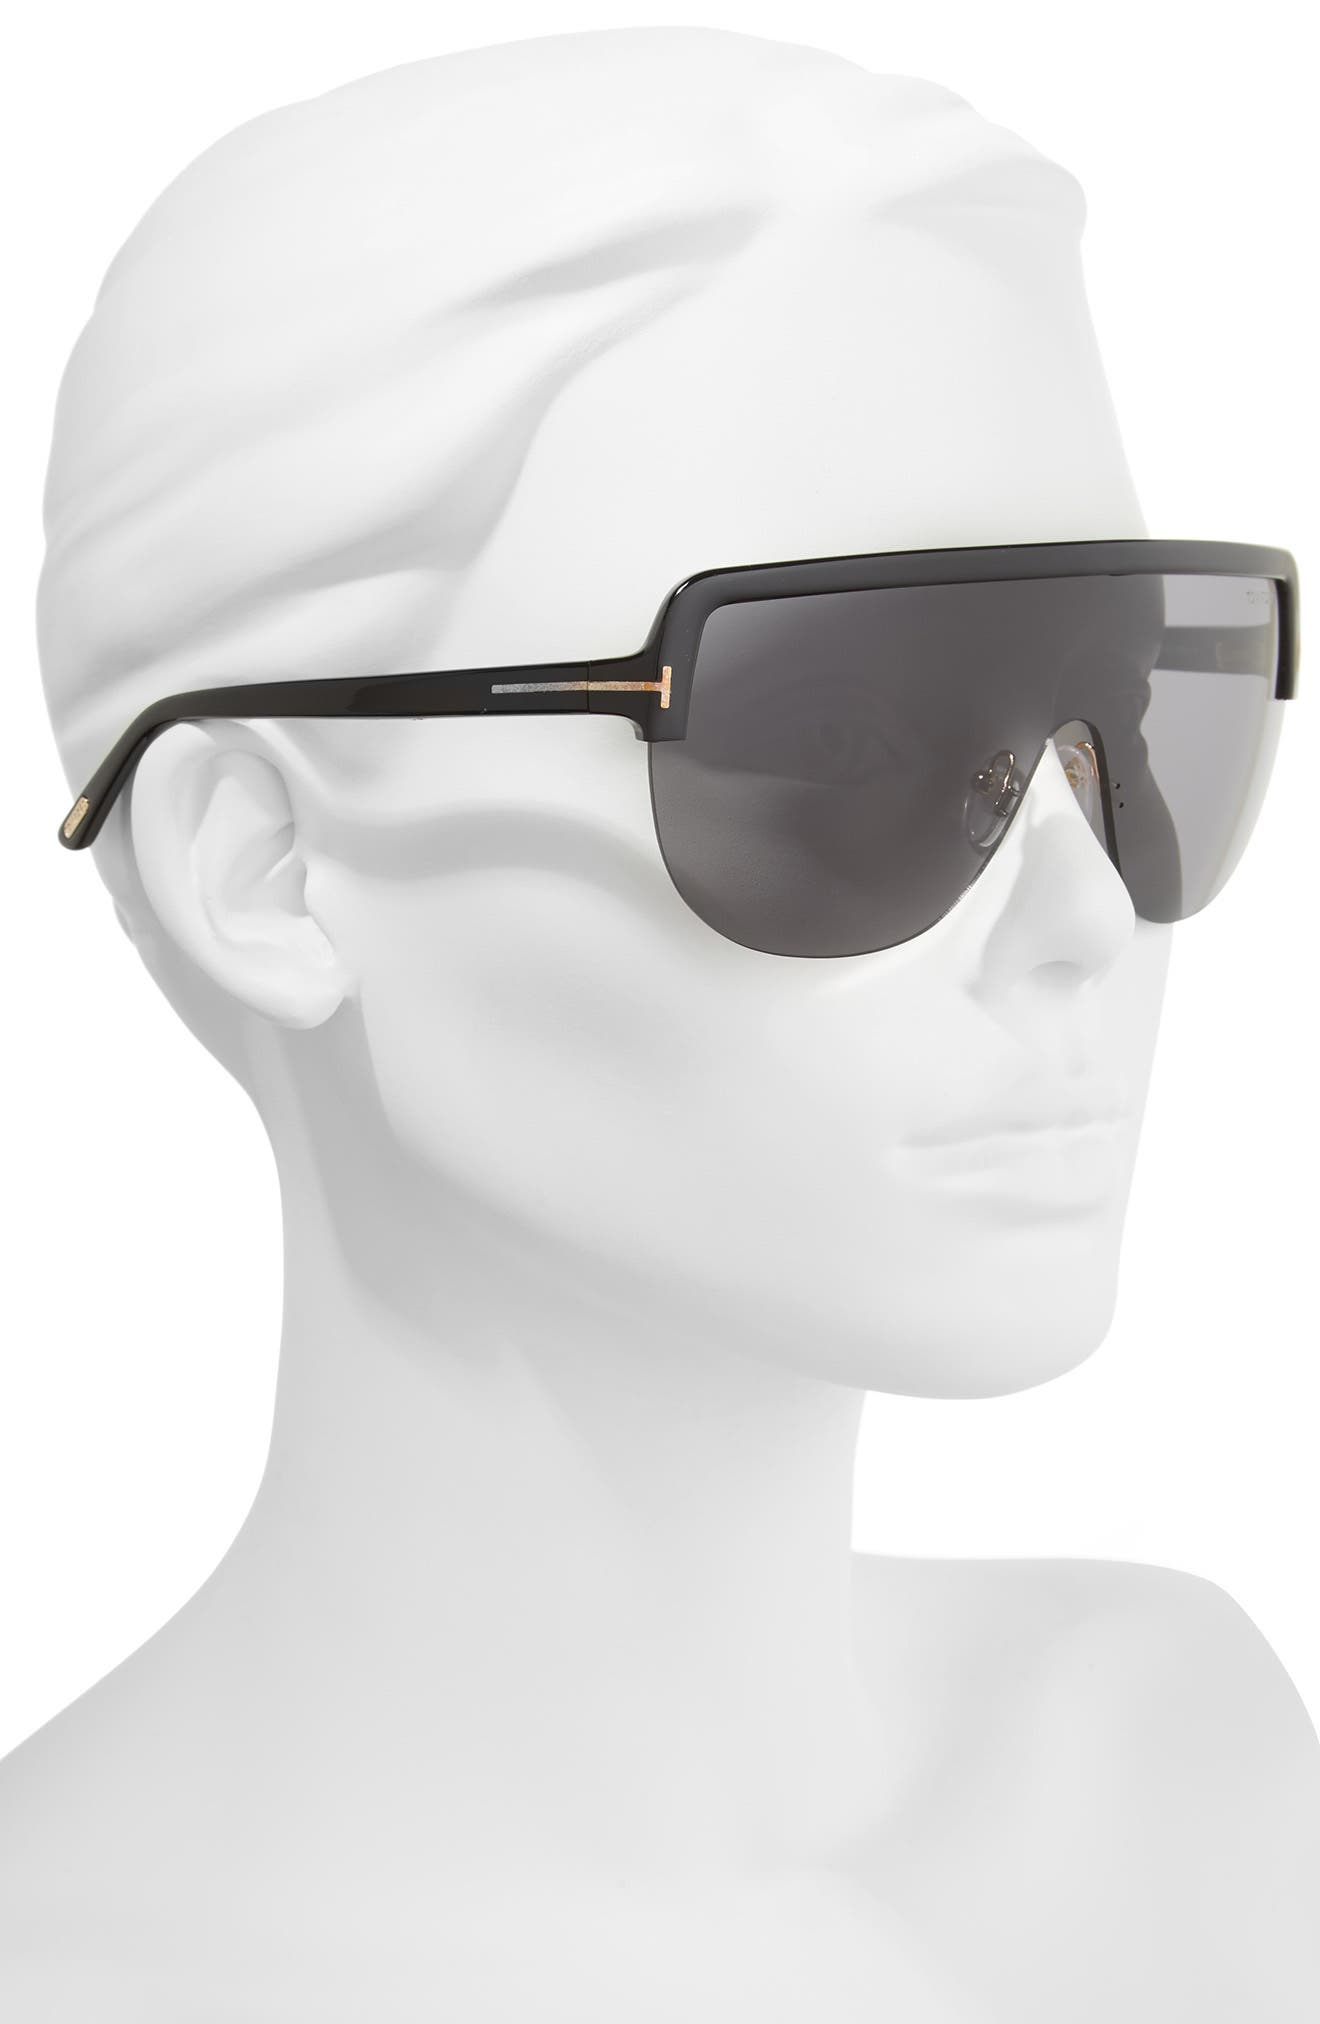 TOM FORD,                             Angus Shield Sunglasses,                             Alternate thumbnail 2, color,                             001